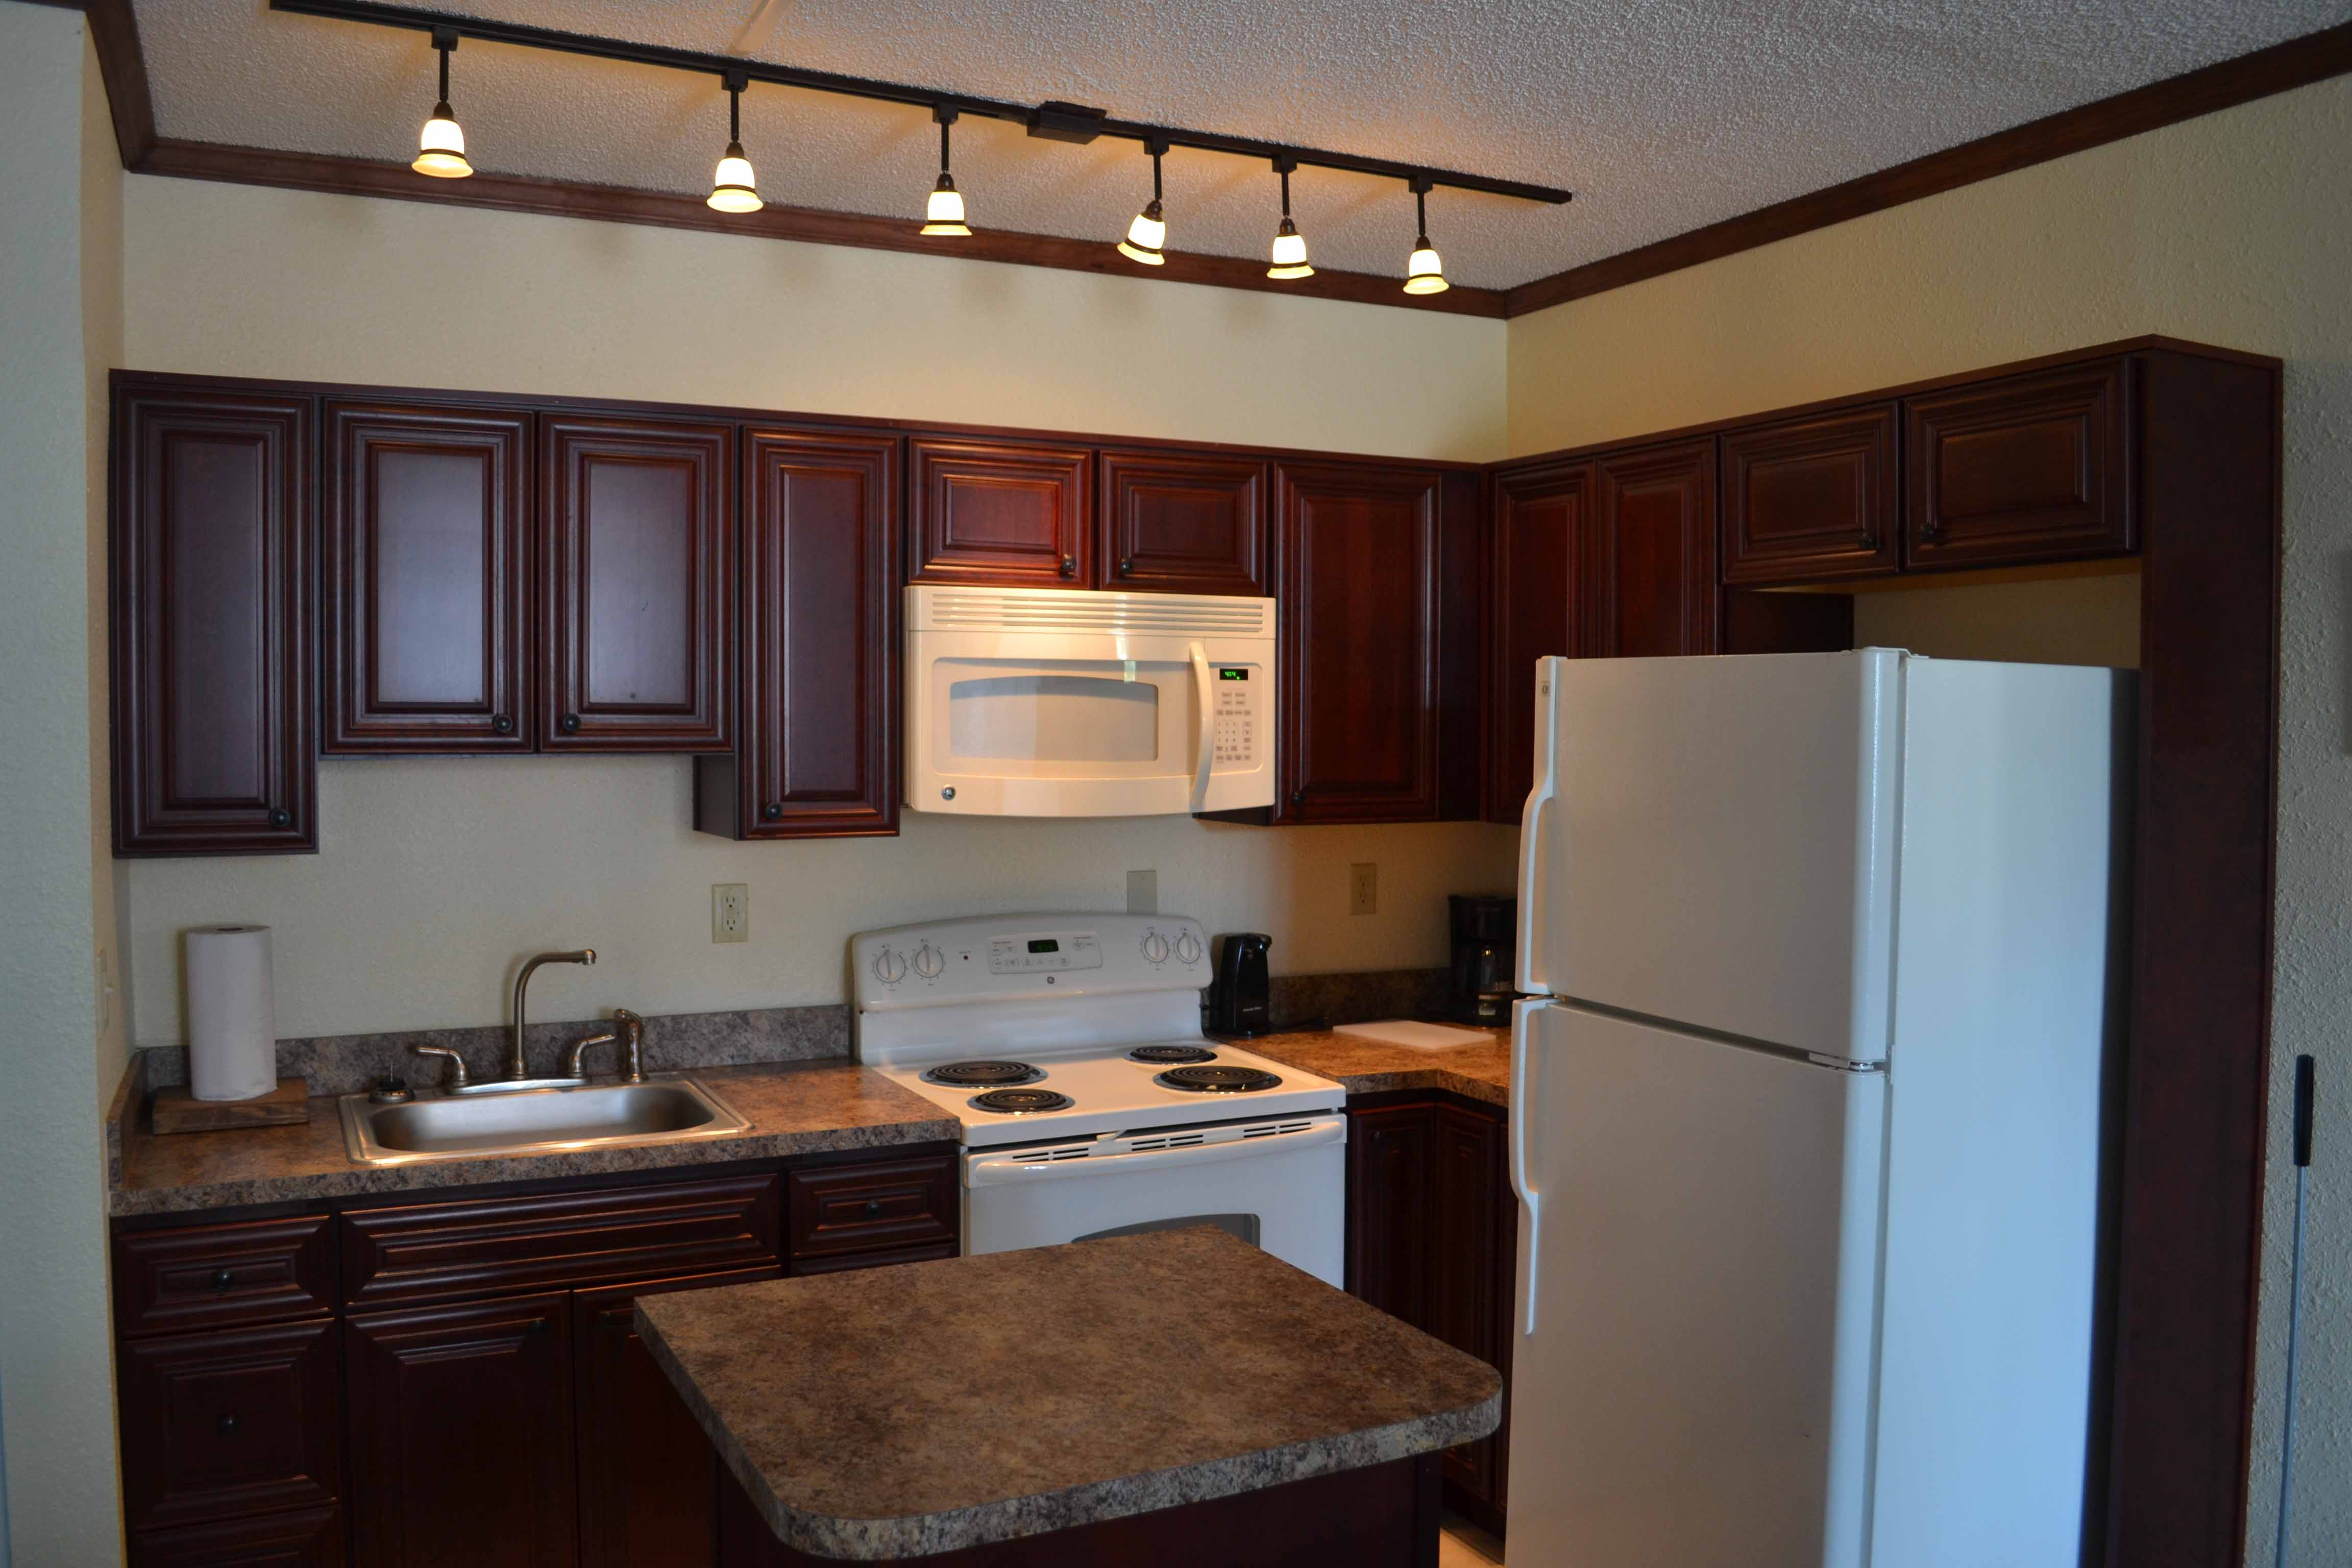 a4-Two-Bedroom-off-ocean-kitchen-2-copy